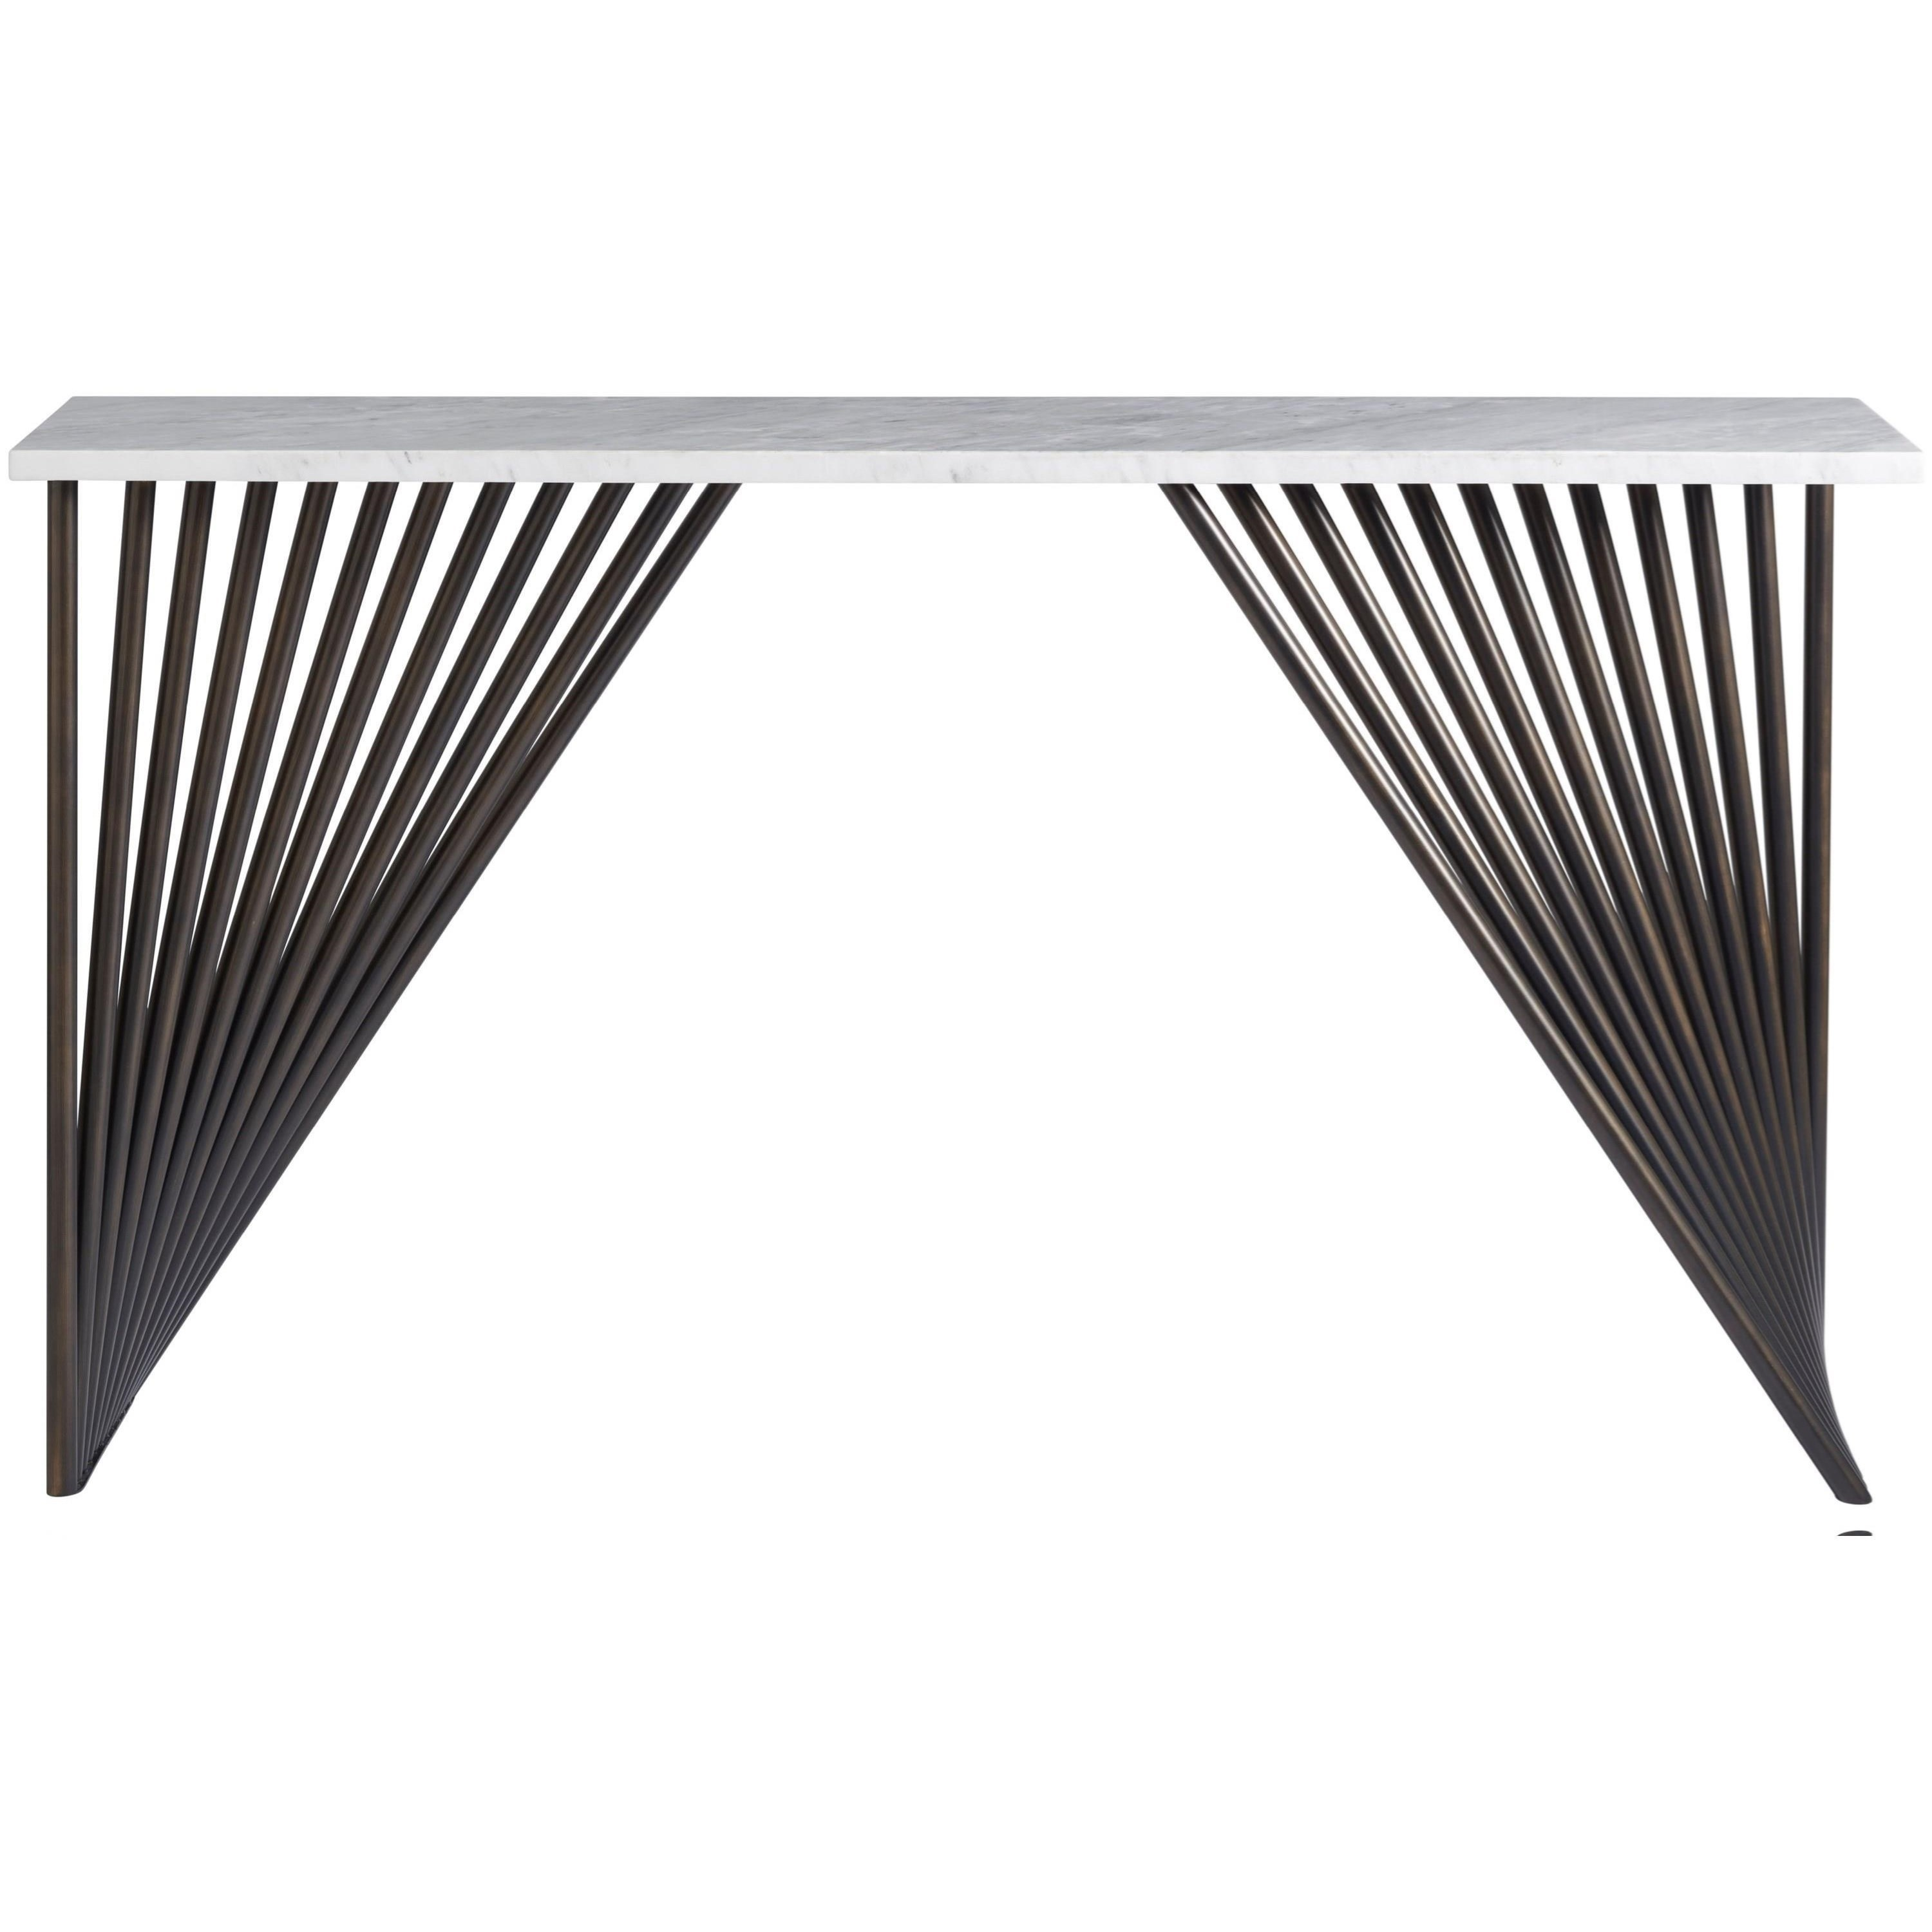 Nina Magon 941 Marcel Console Table by Universal at Stoney Creek Furniture